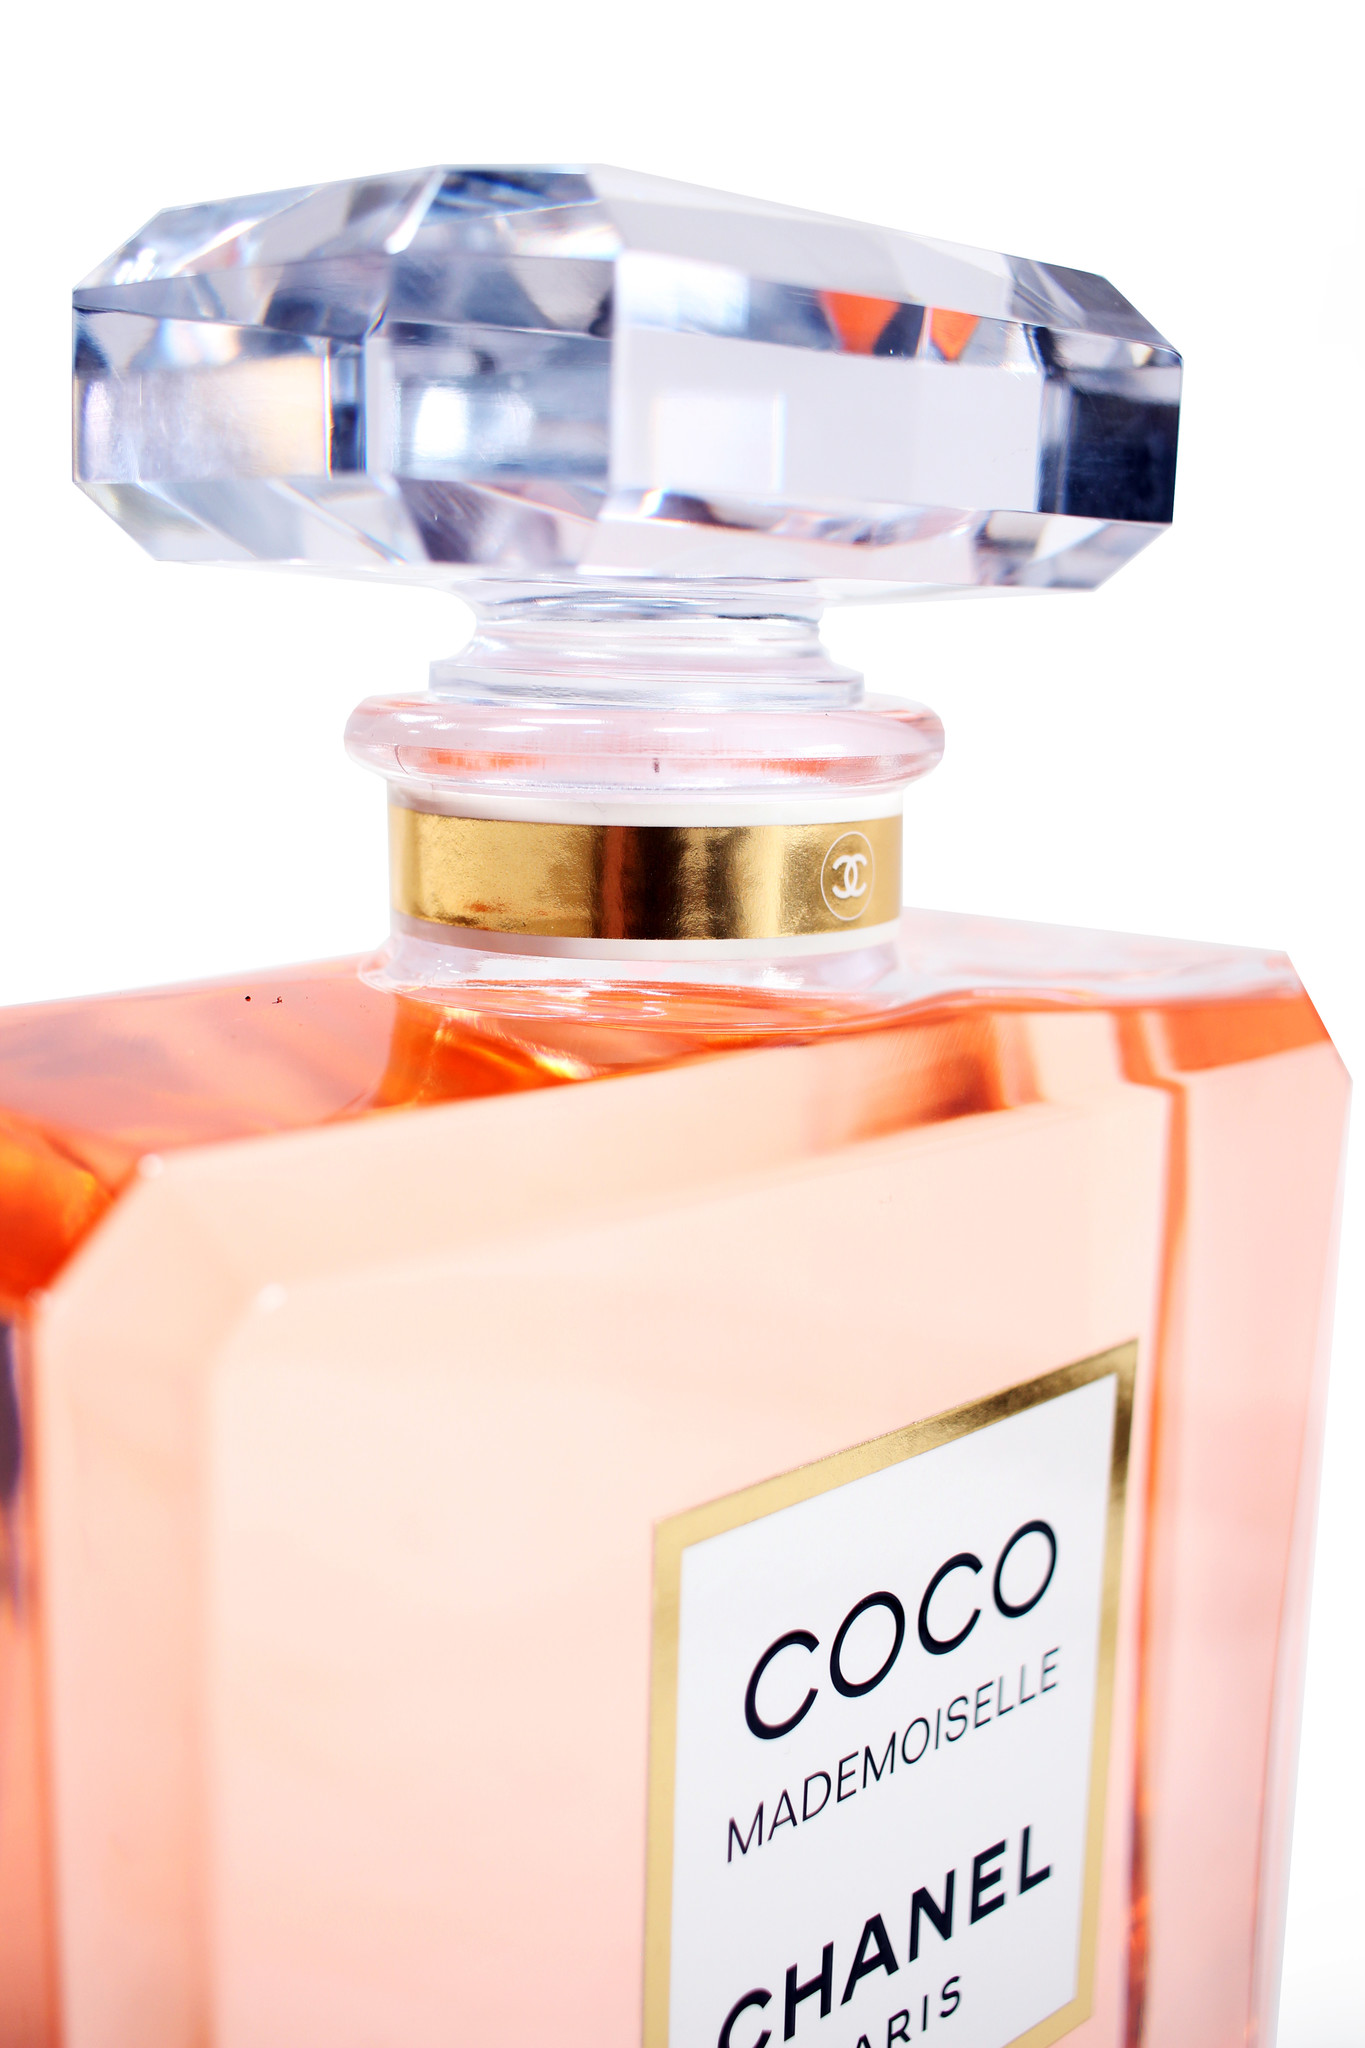 Coco Chanel Mademoiselle XL Factice